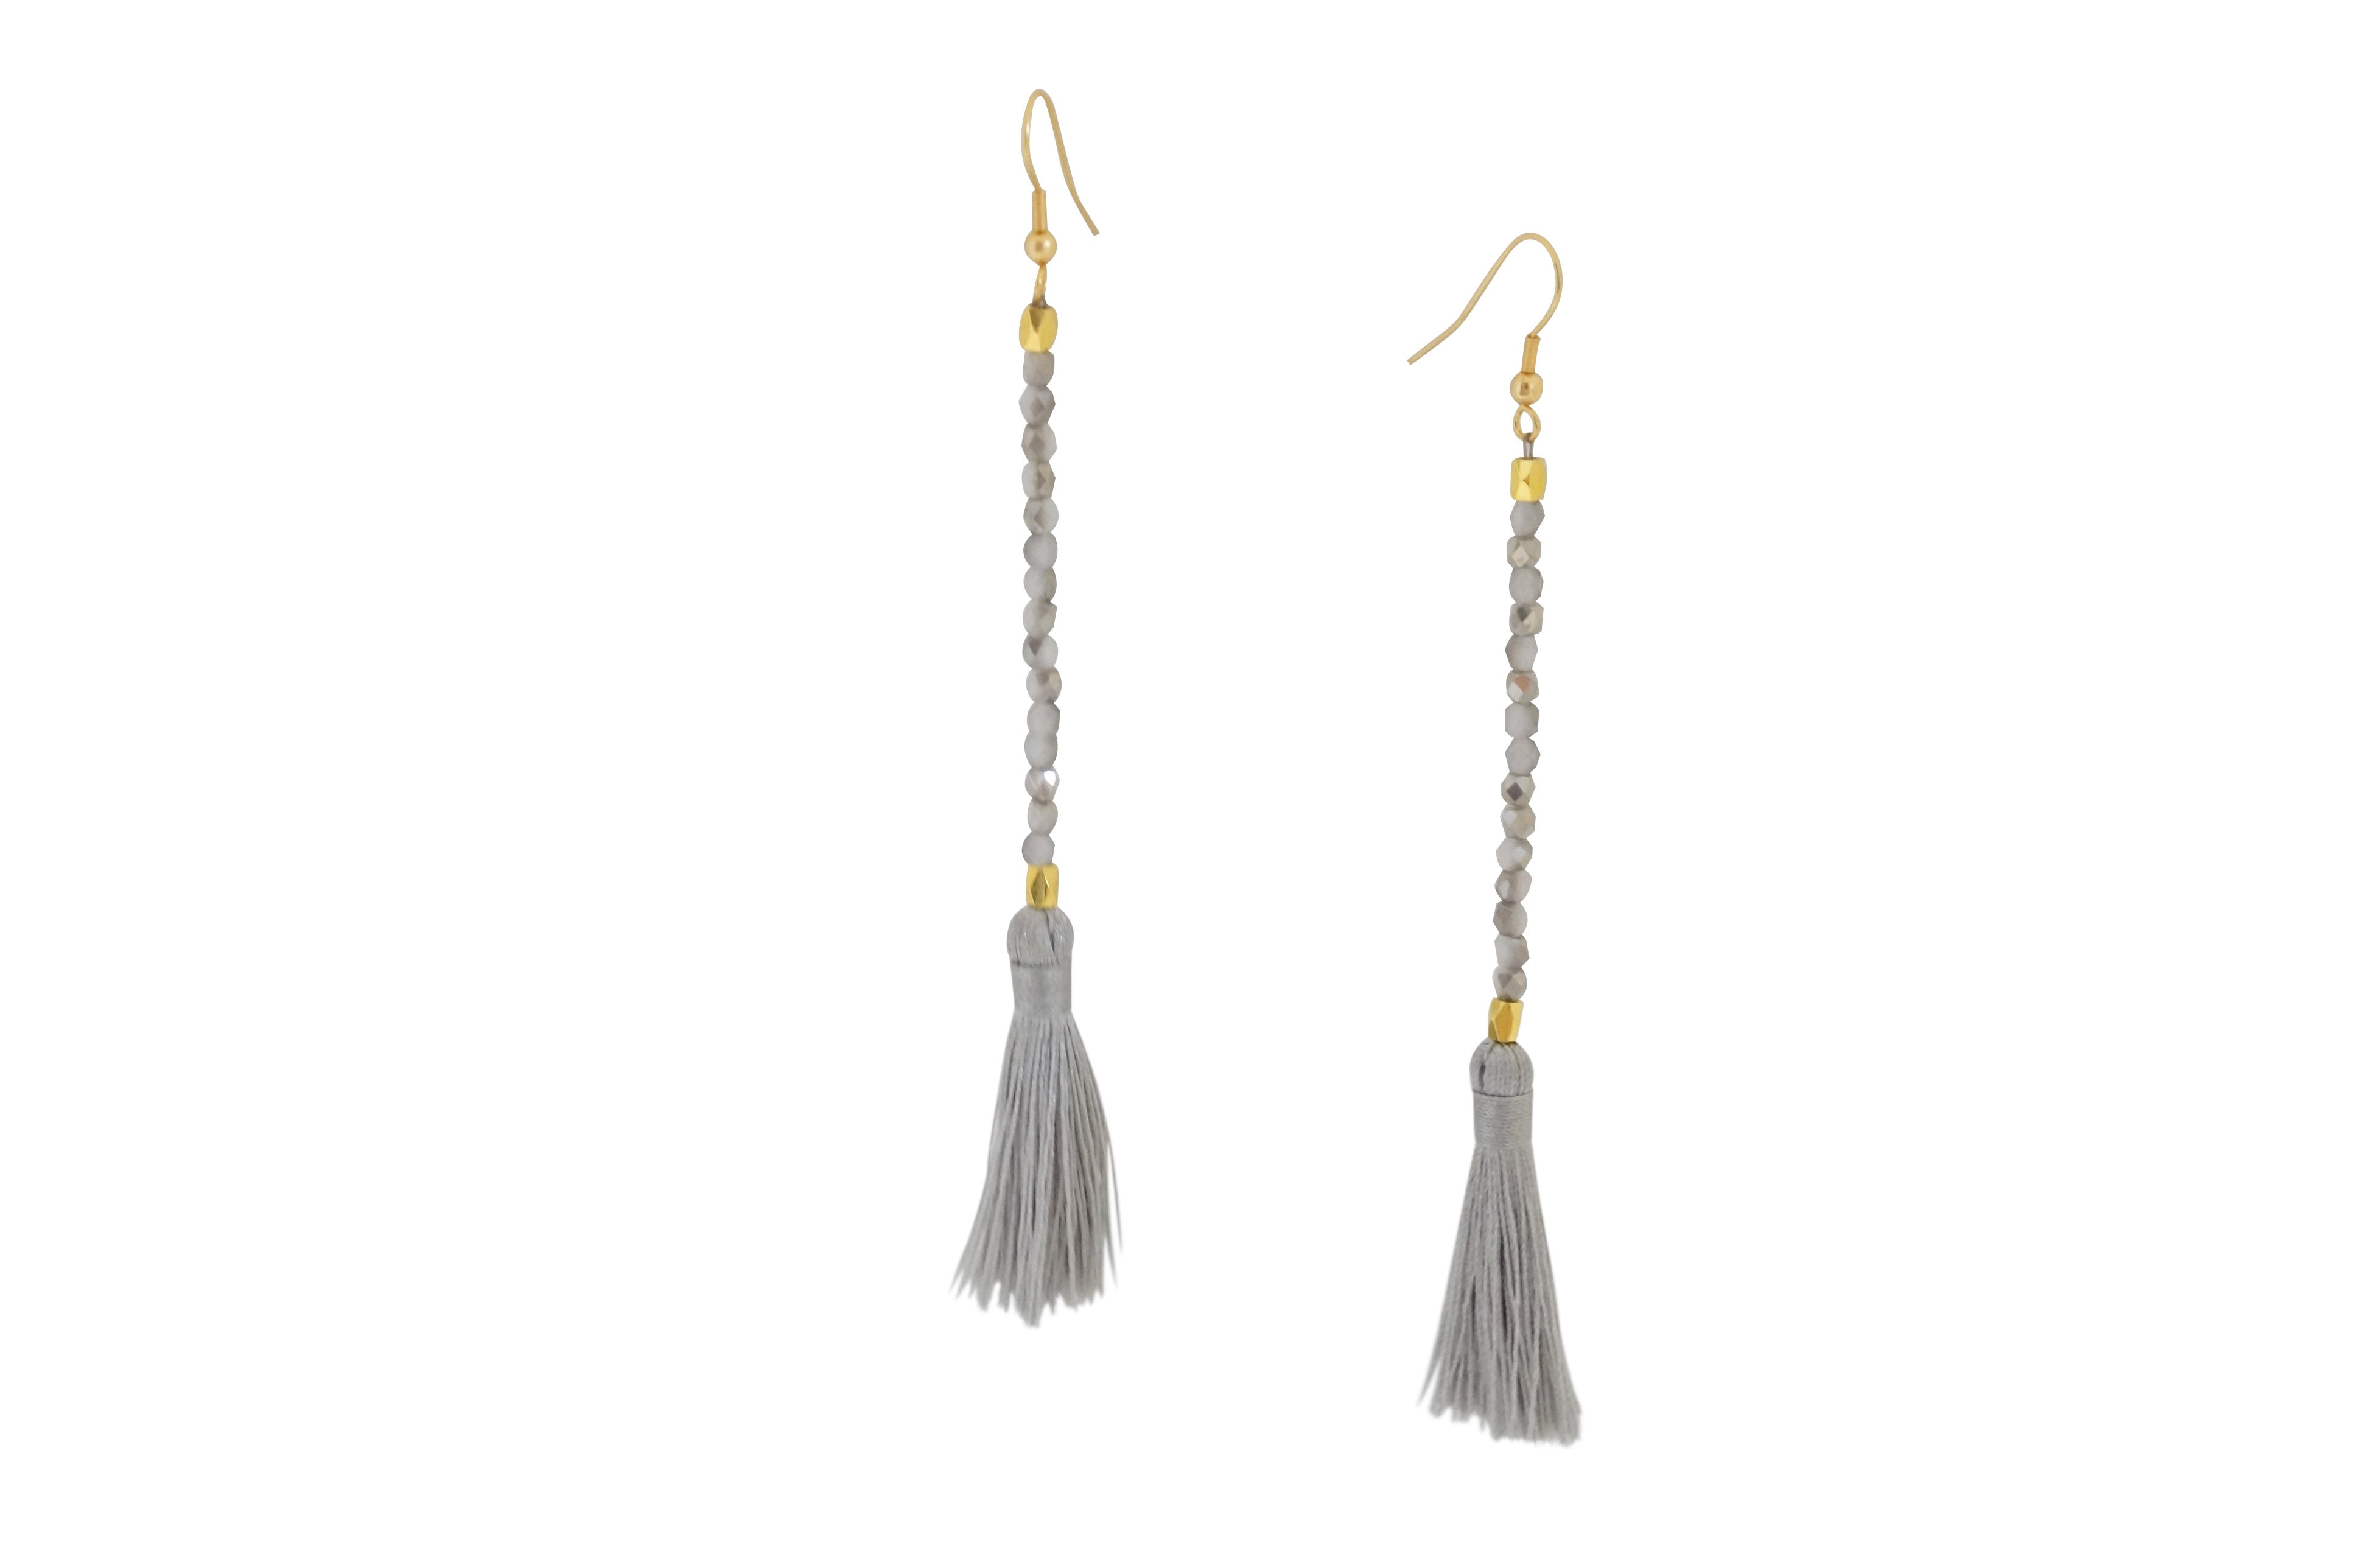 Enlightened Earrings - Carolyn Hearn Designs